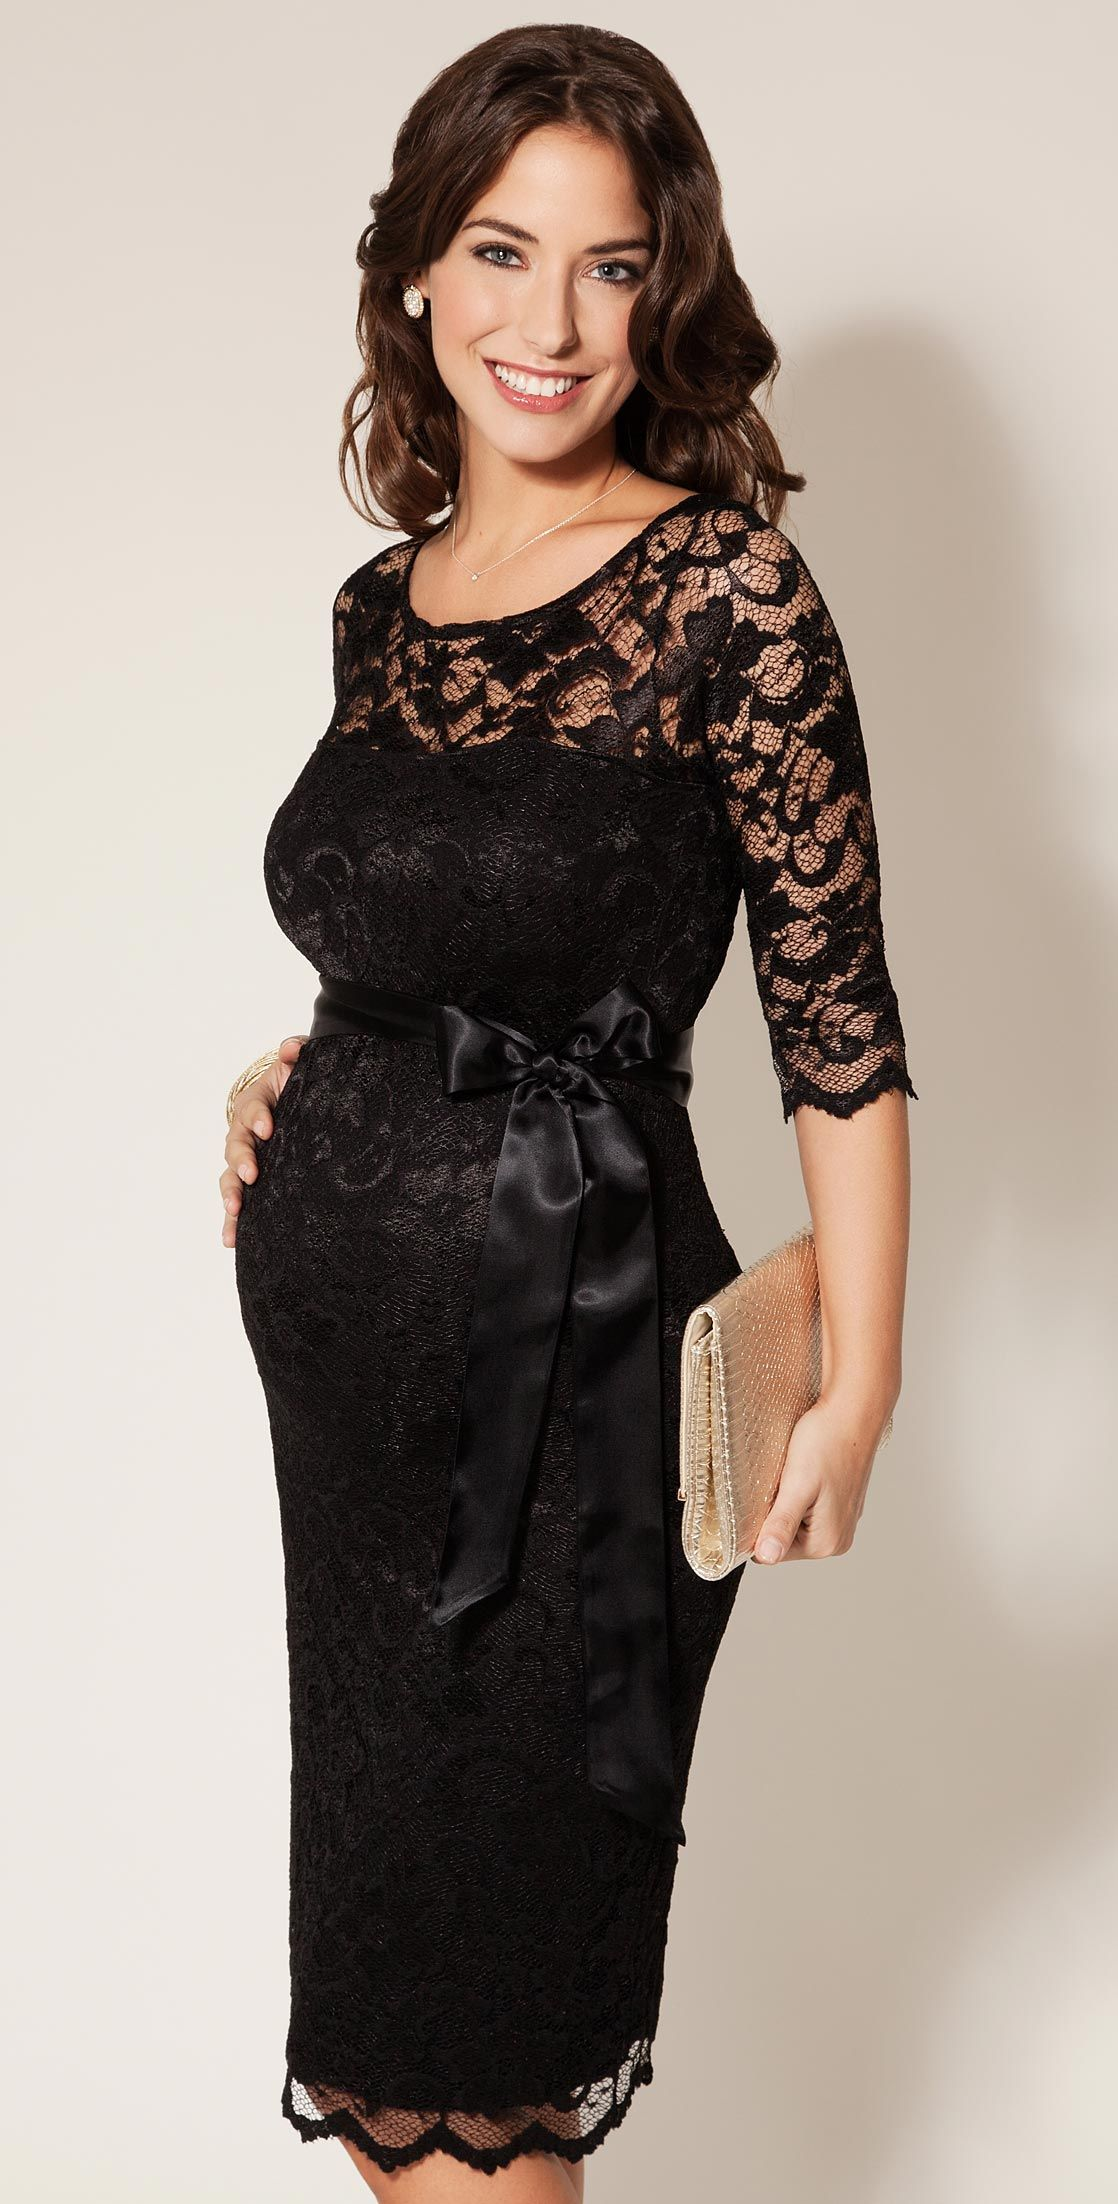 752e2956e48f4 maternity dress | Amelia Lace Maternity Dress Short (Black) by Tiffany Rose  #maternity #LBD #billionaire